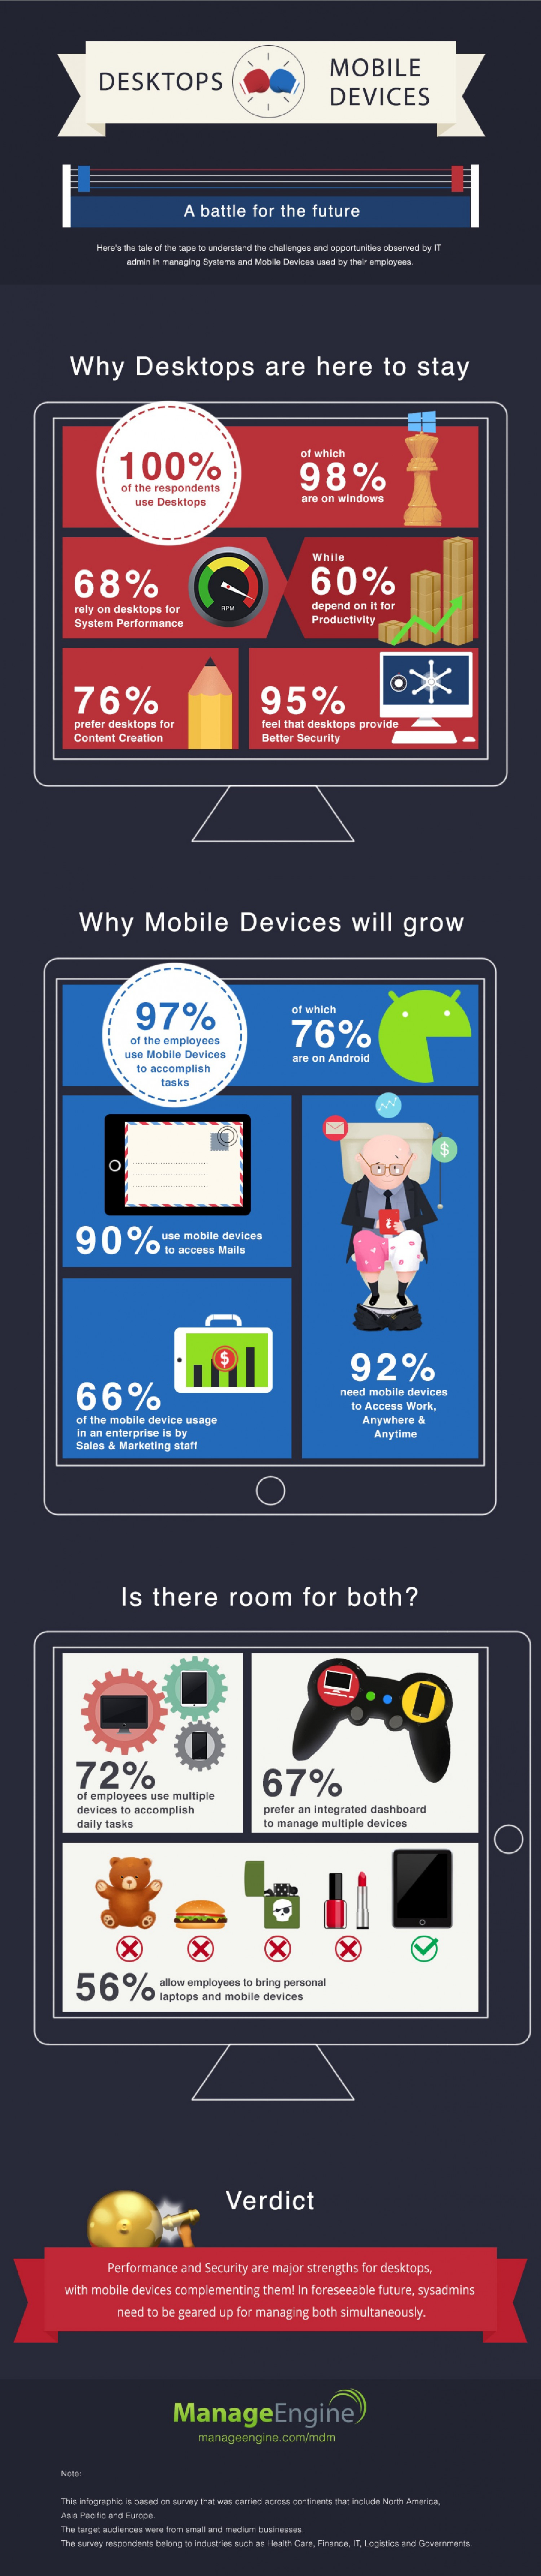 Mobile Devices or Desktops? Infographic